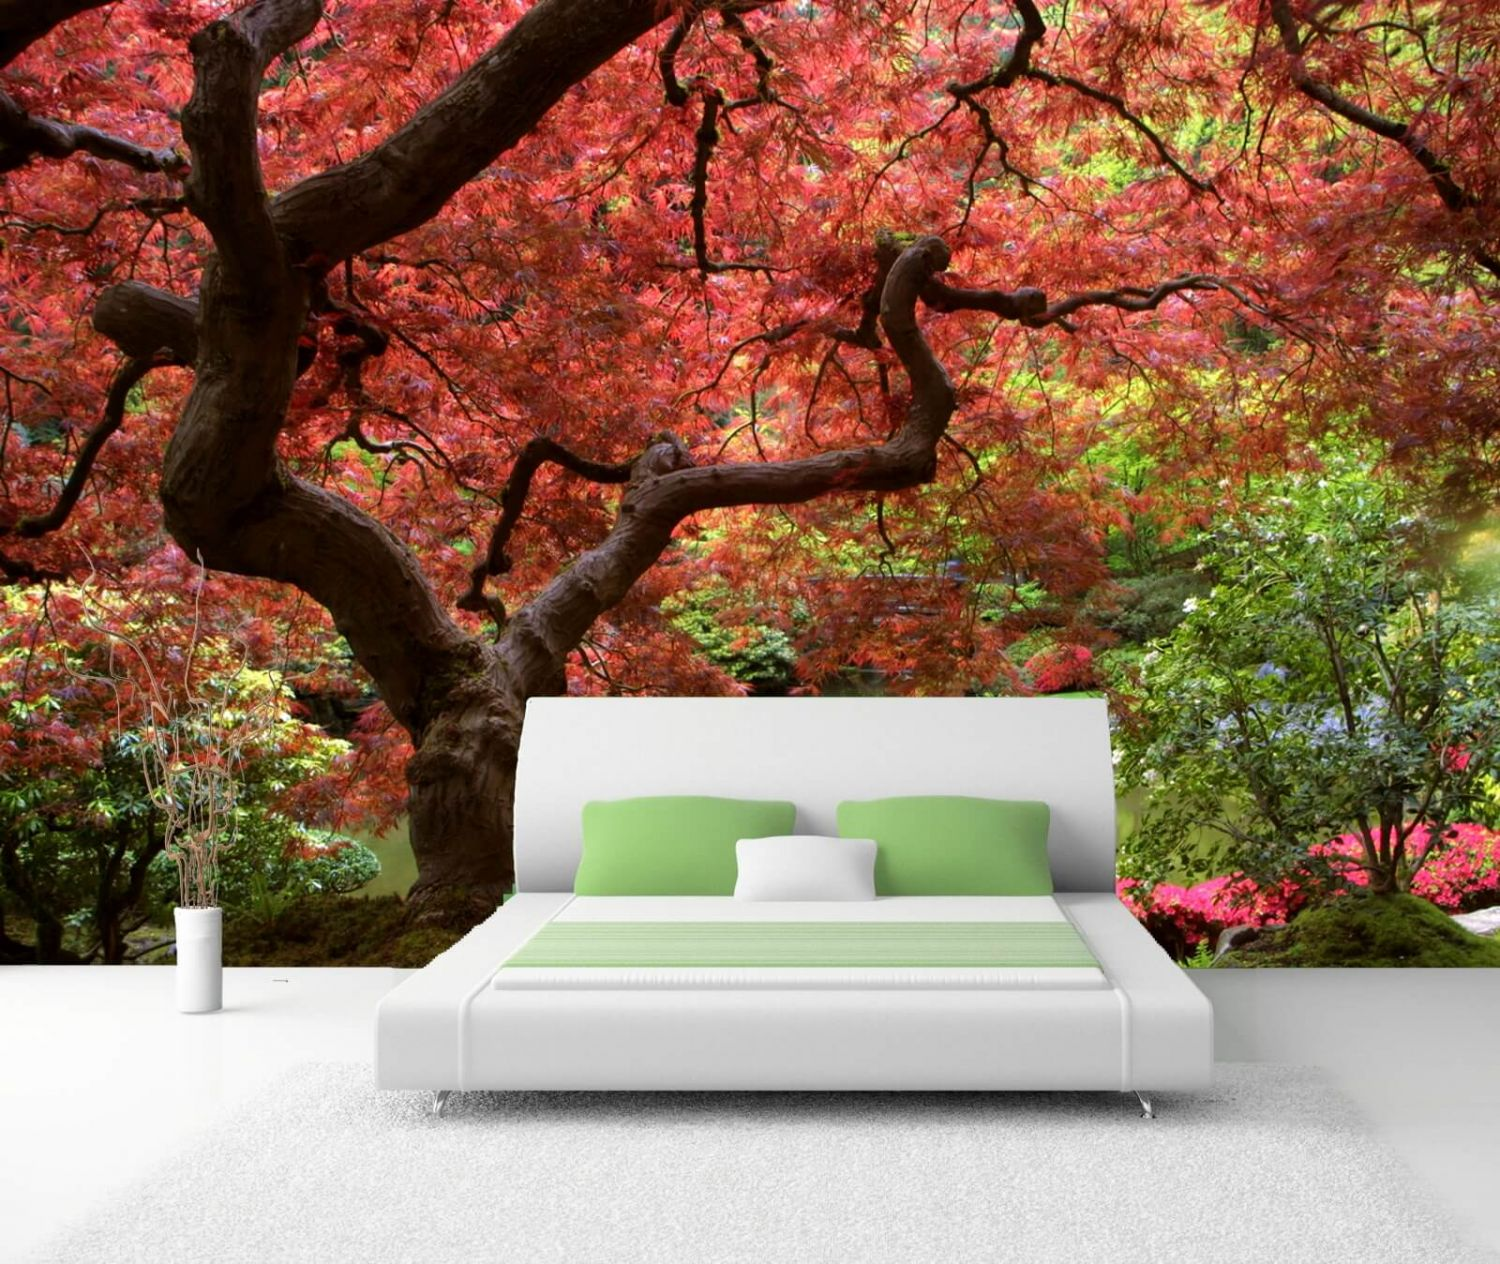 vlies xxl poster tapete fototapete natur japanischer. Black Bedroom Furniture Sets. Home Design Ideas